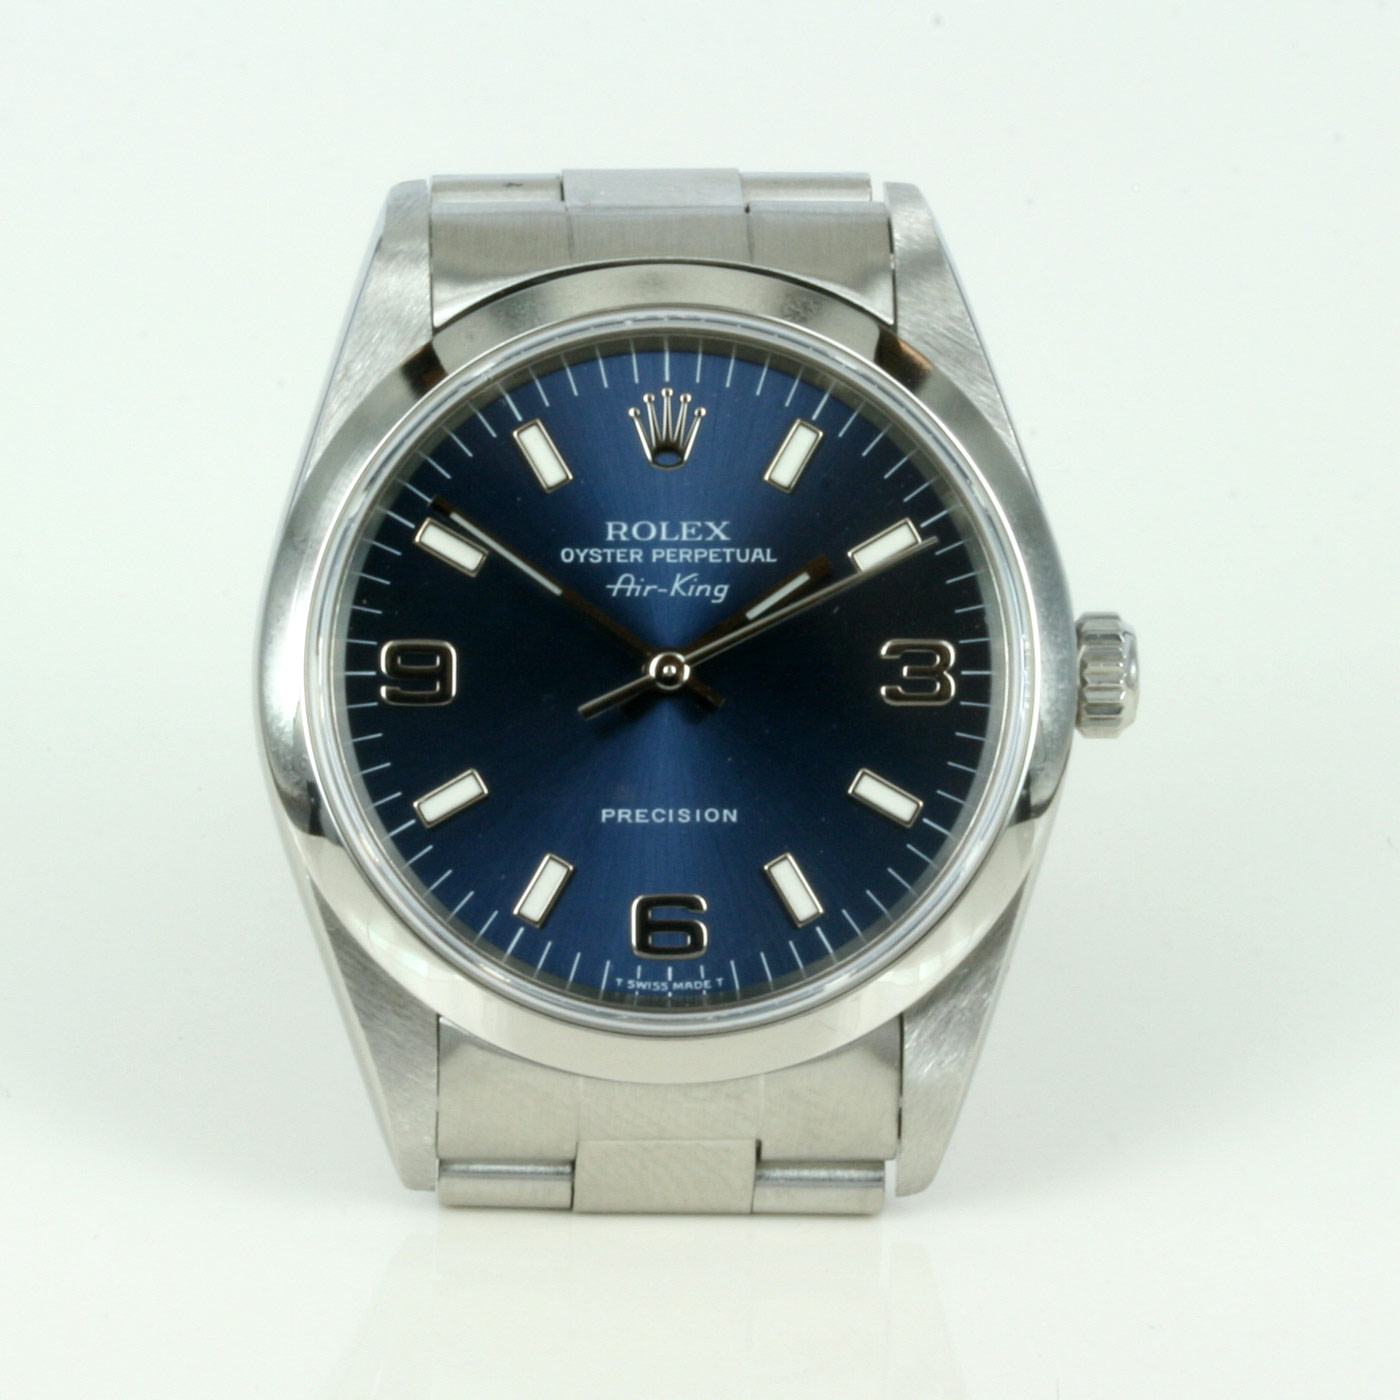 Buy rolex air king blue dial with 3 6 9 dial sold items sold rolex watches sydney kalmarantiques for Rolex air king